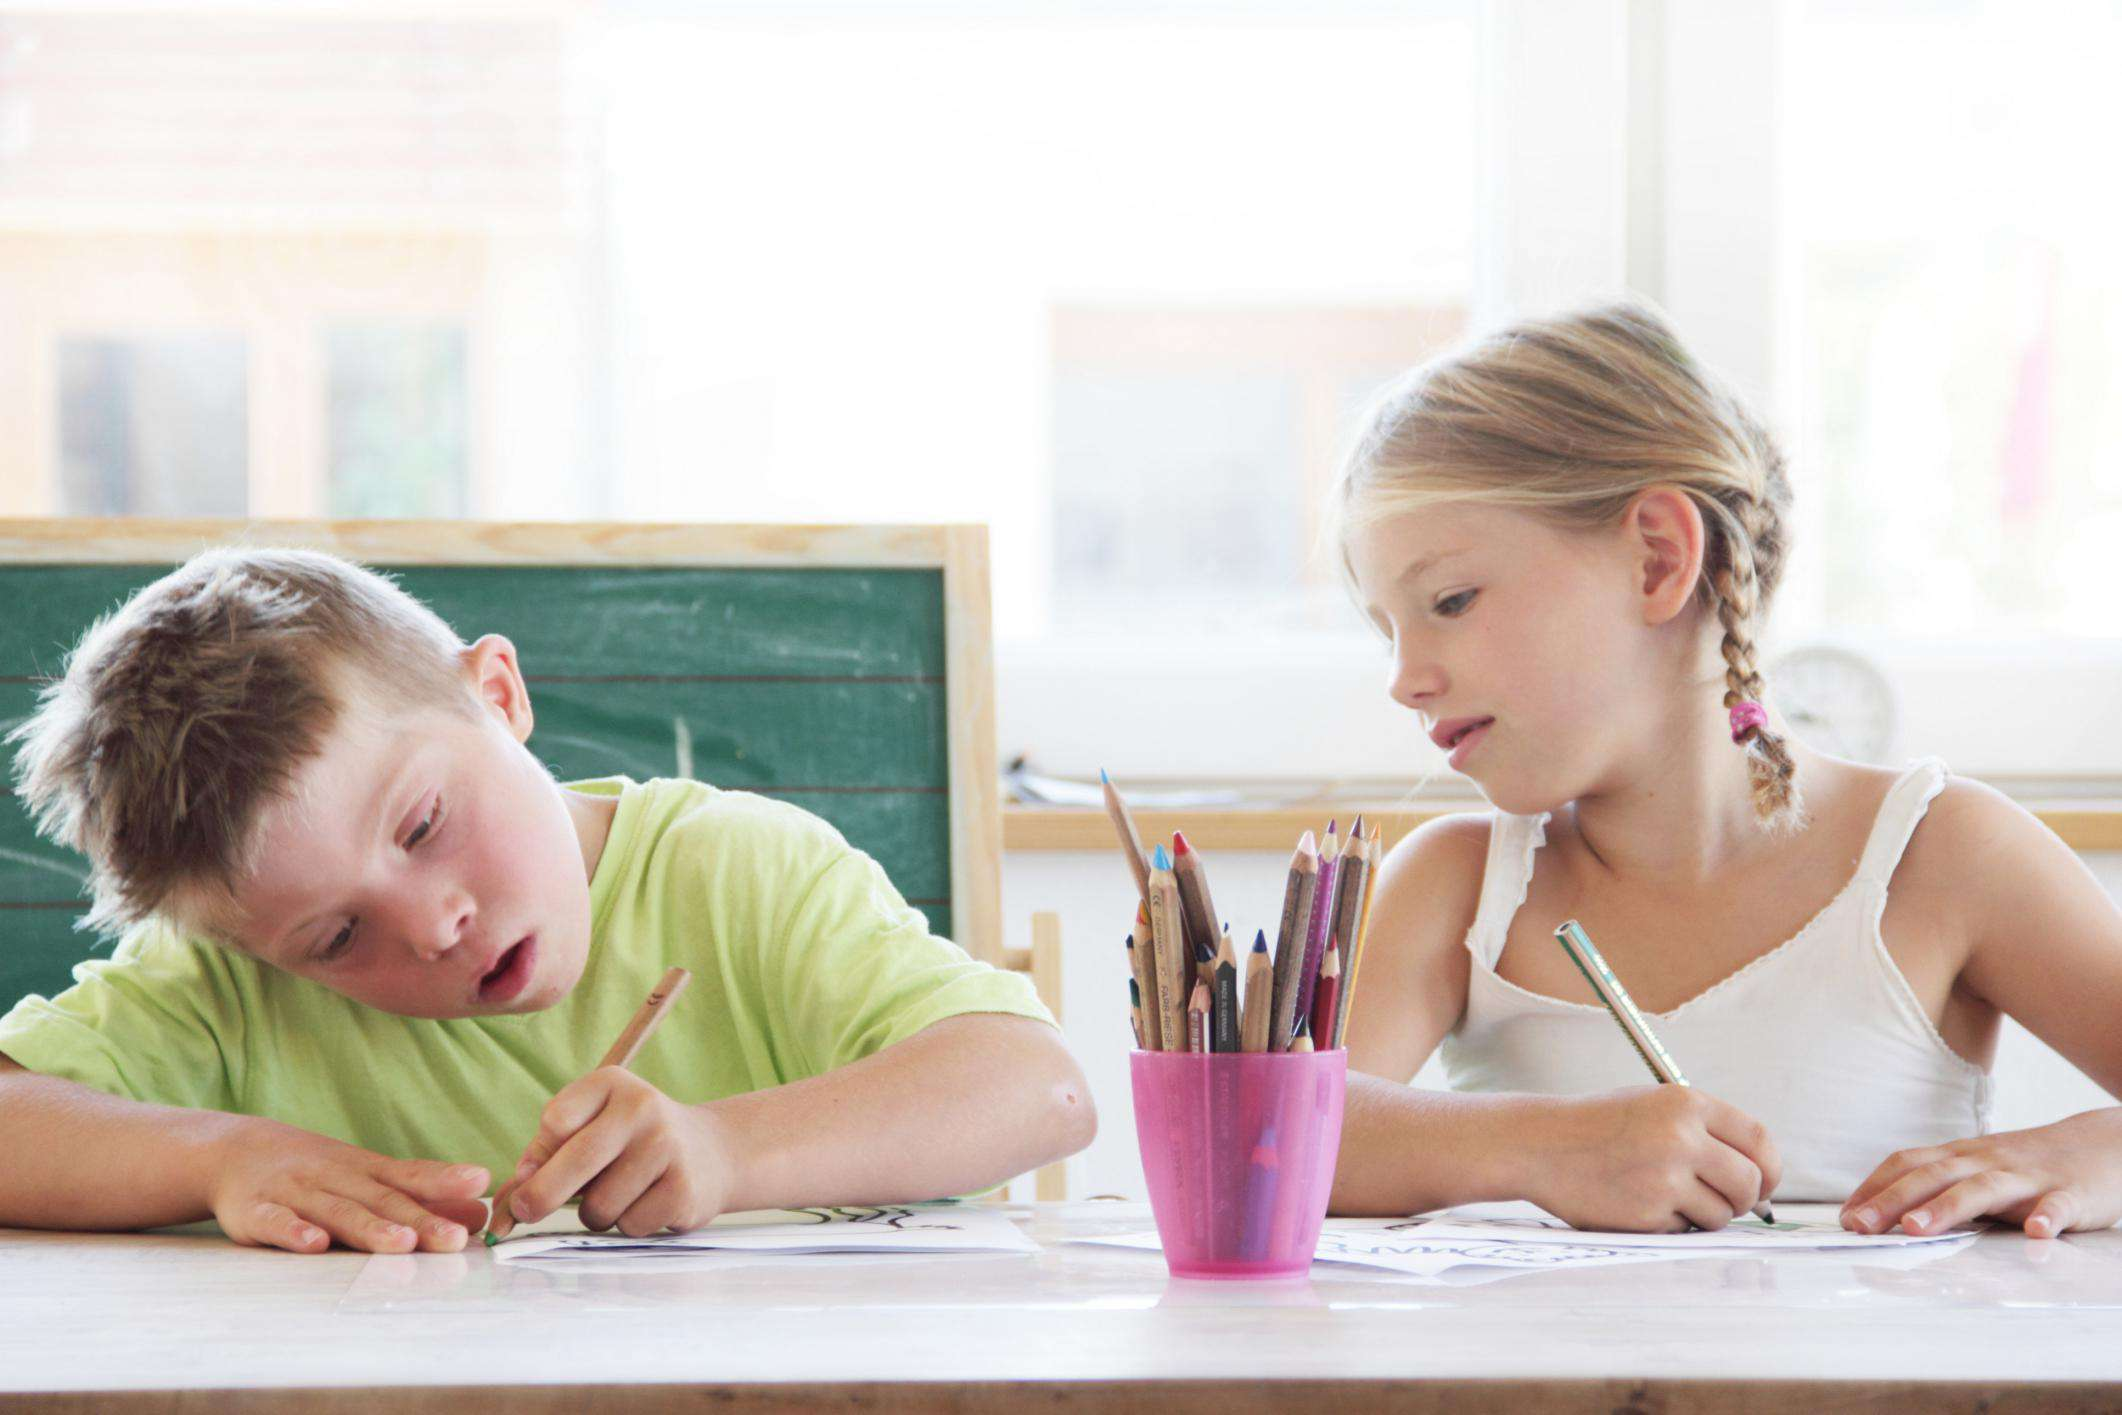 Two children working on their homework together